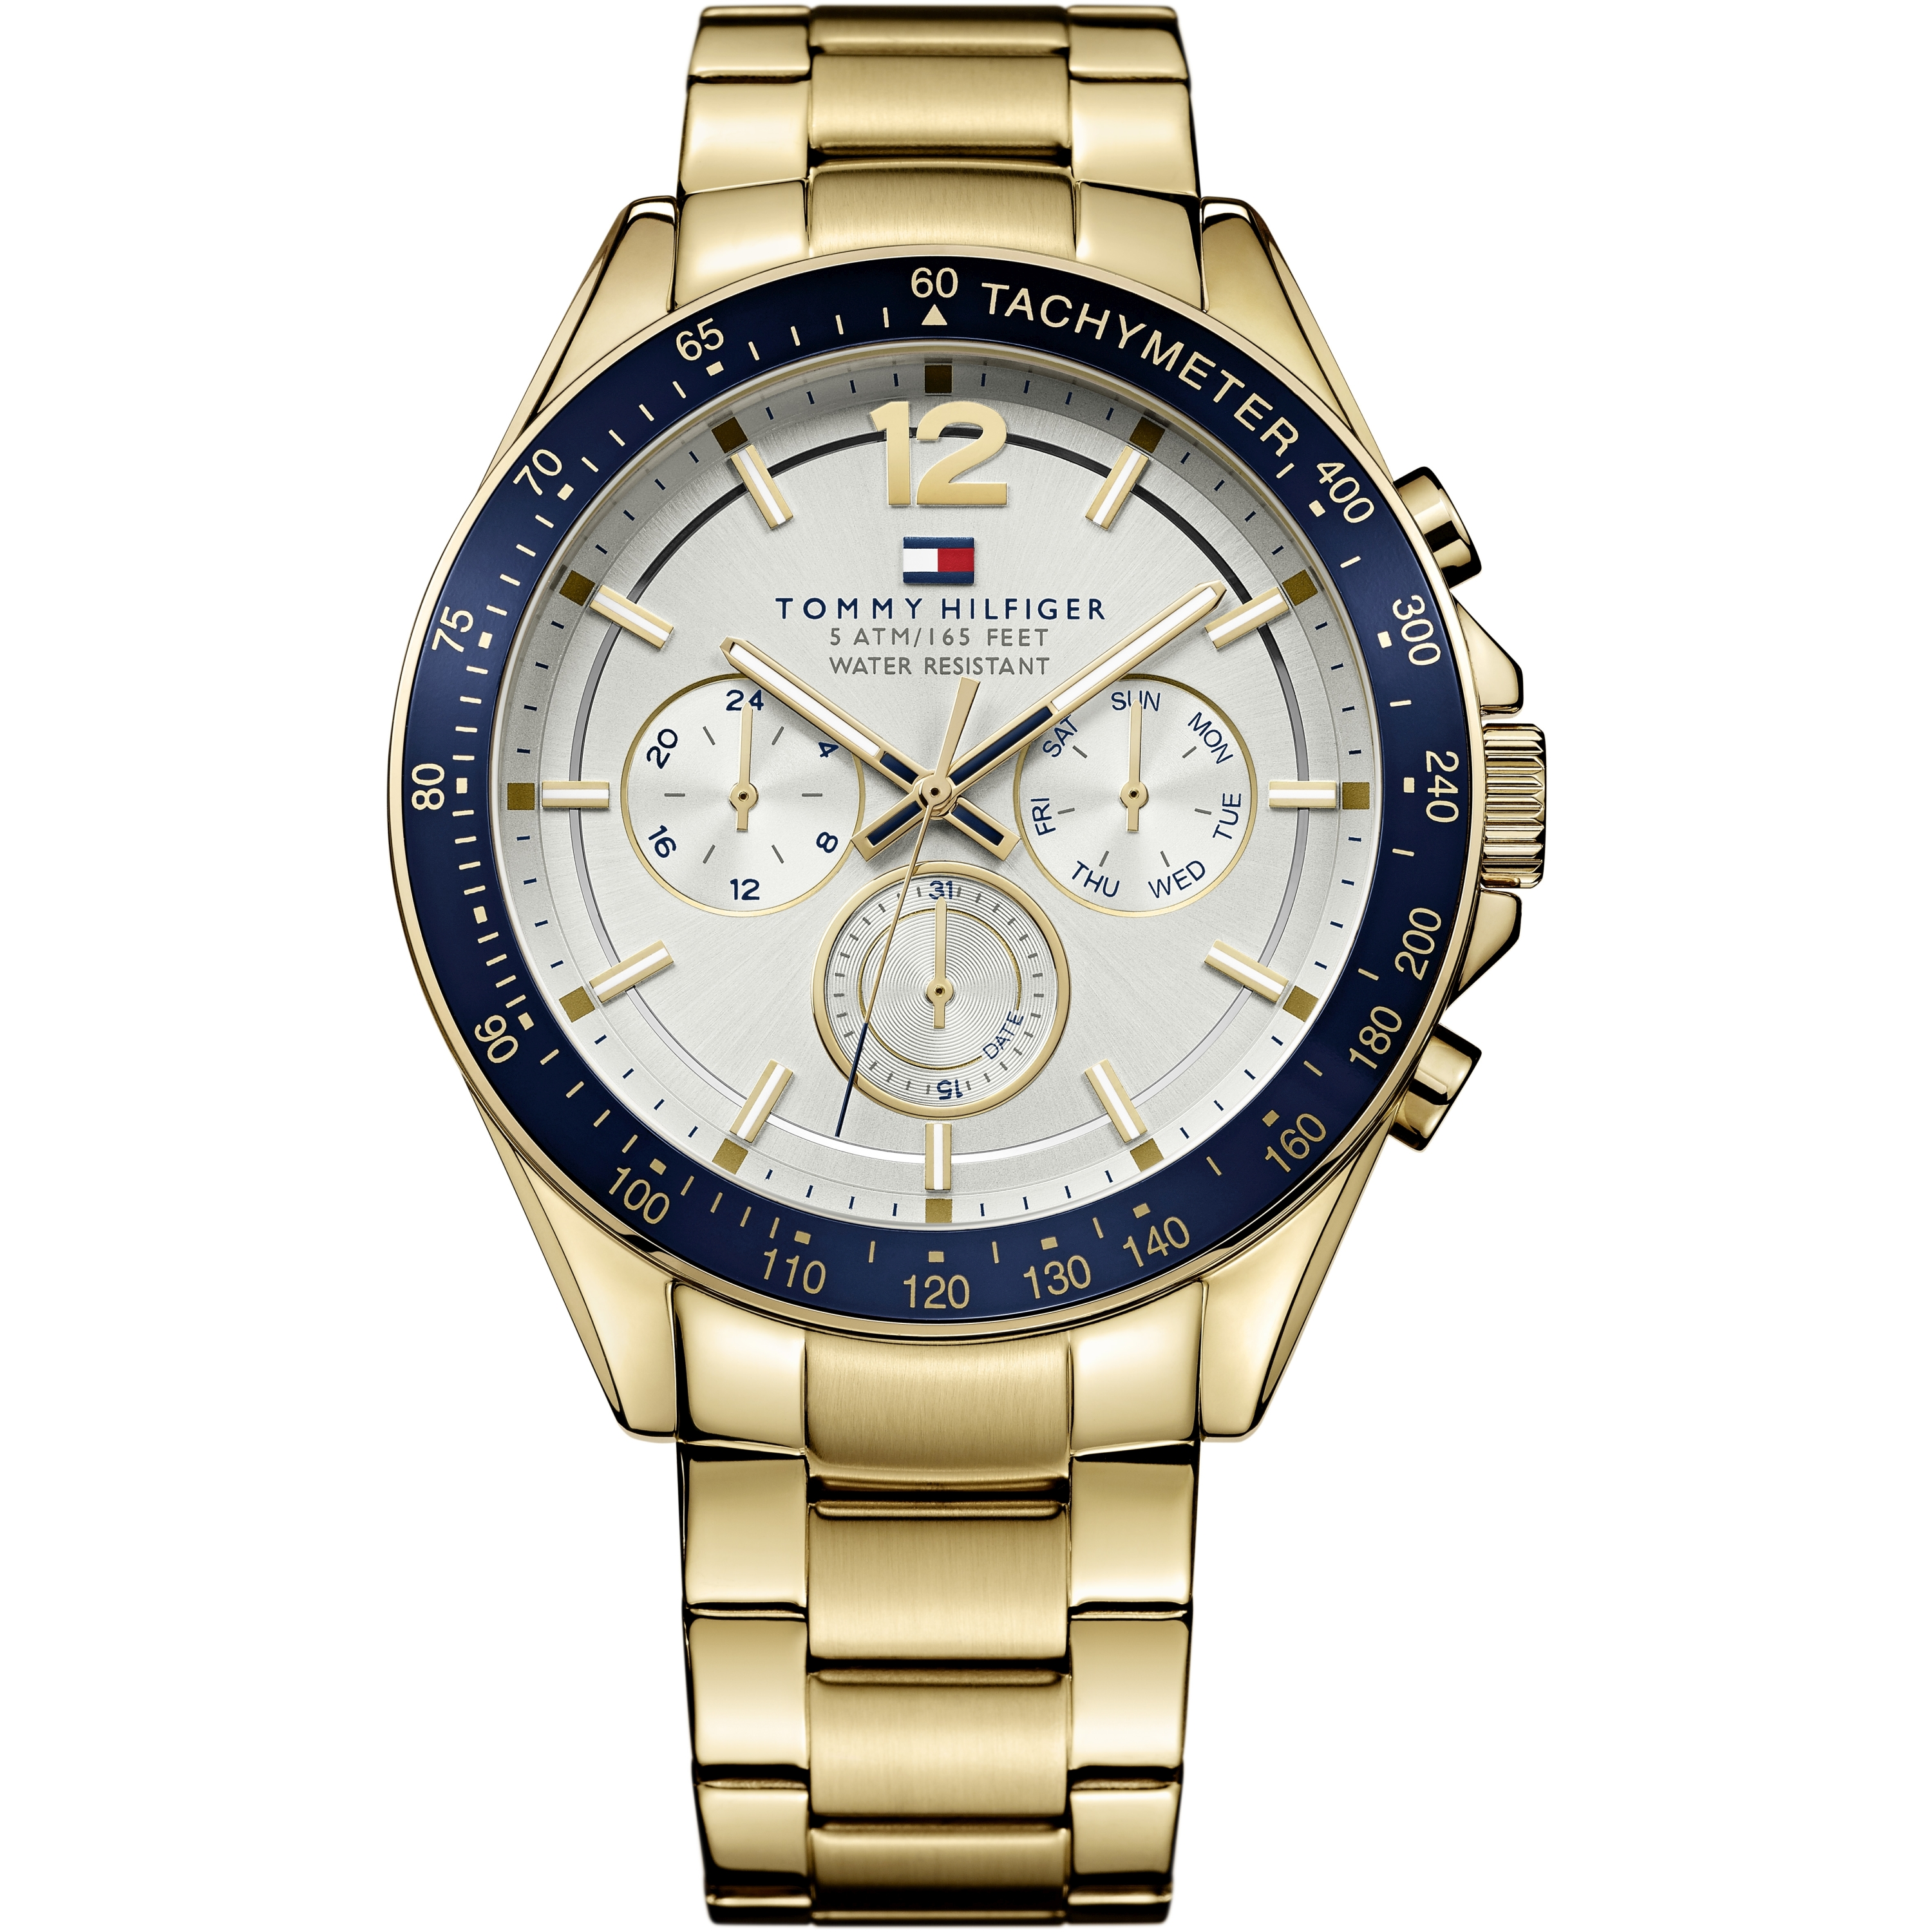 23fc2860 Gents Tommy Hilfiger Luke Watch (1791121) | WatchShop.com™